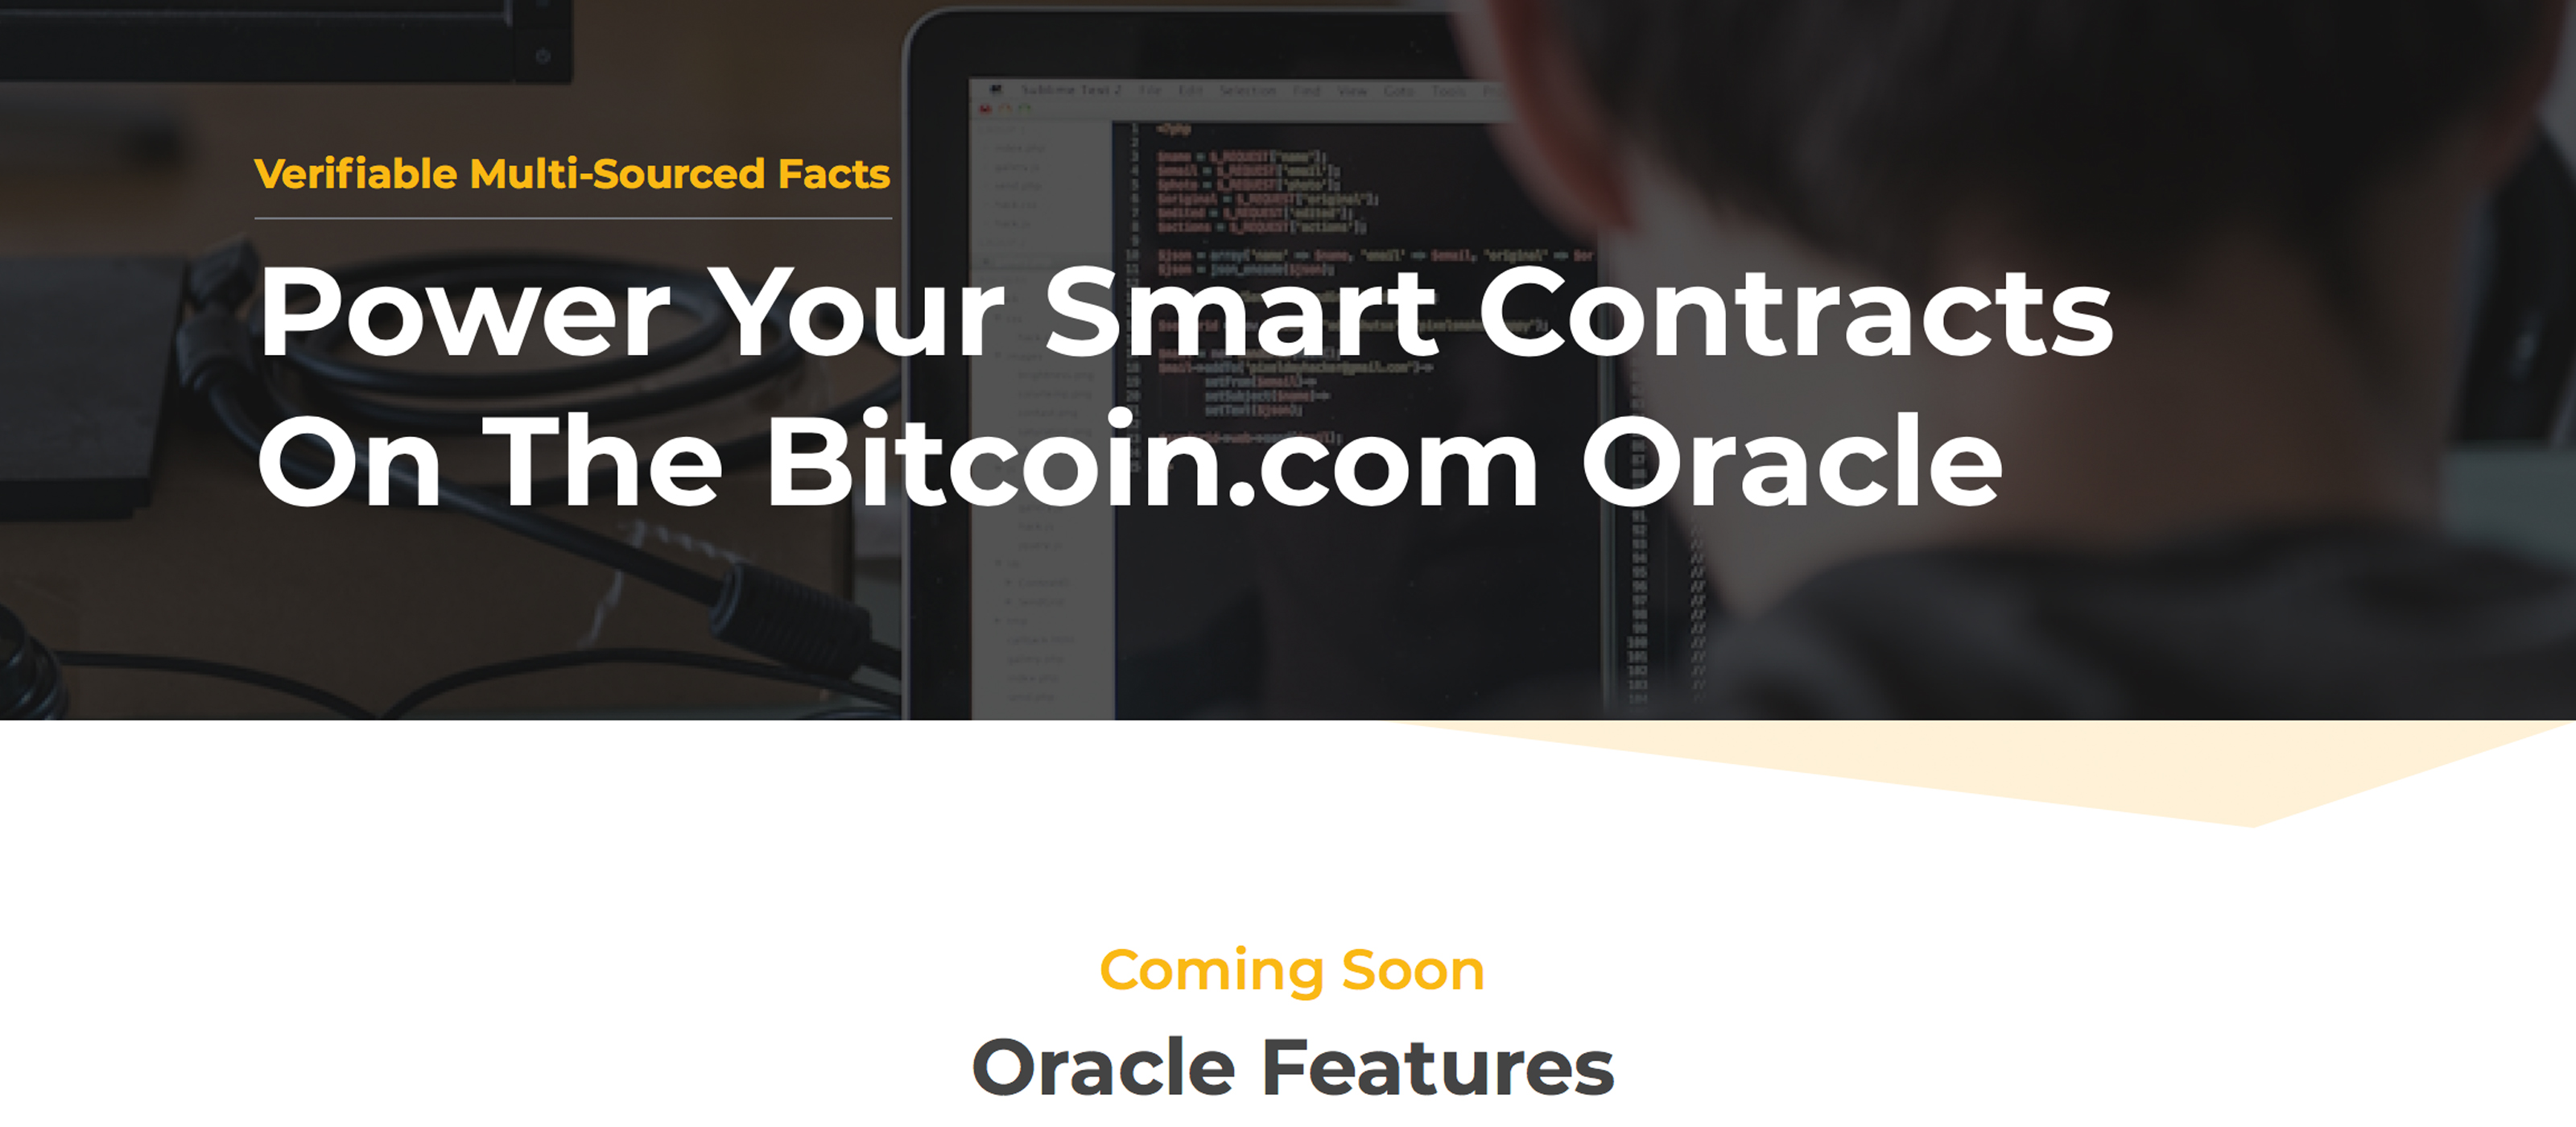 Bitcoin.com's Oracle Aims to Bolster BCH-Powered Smart Contracts - BTC Shore